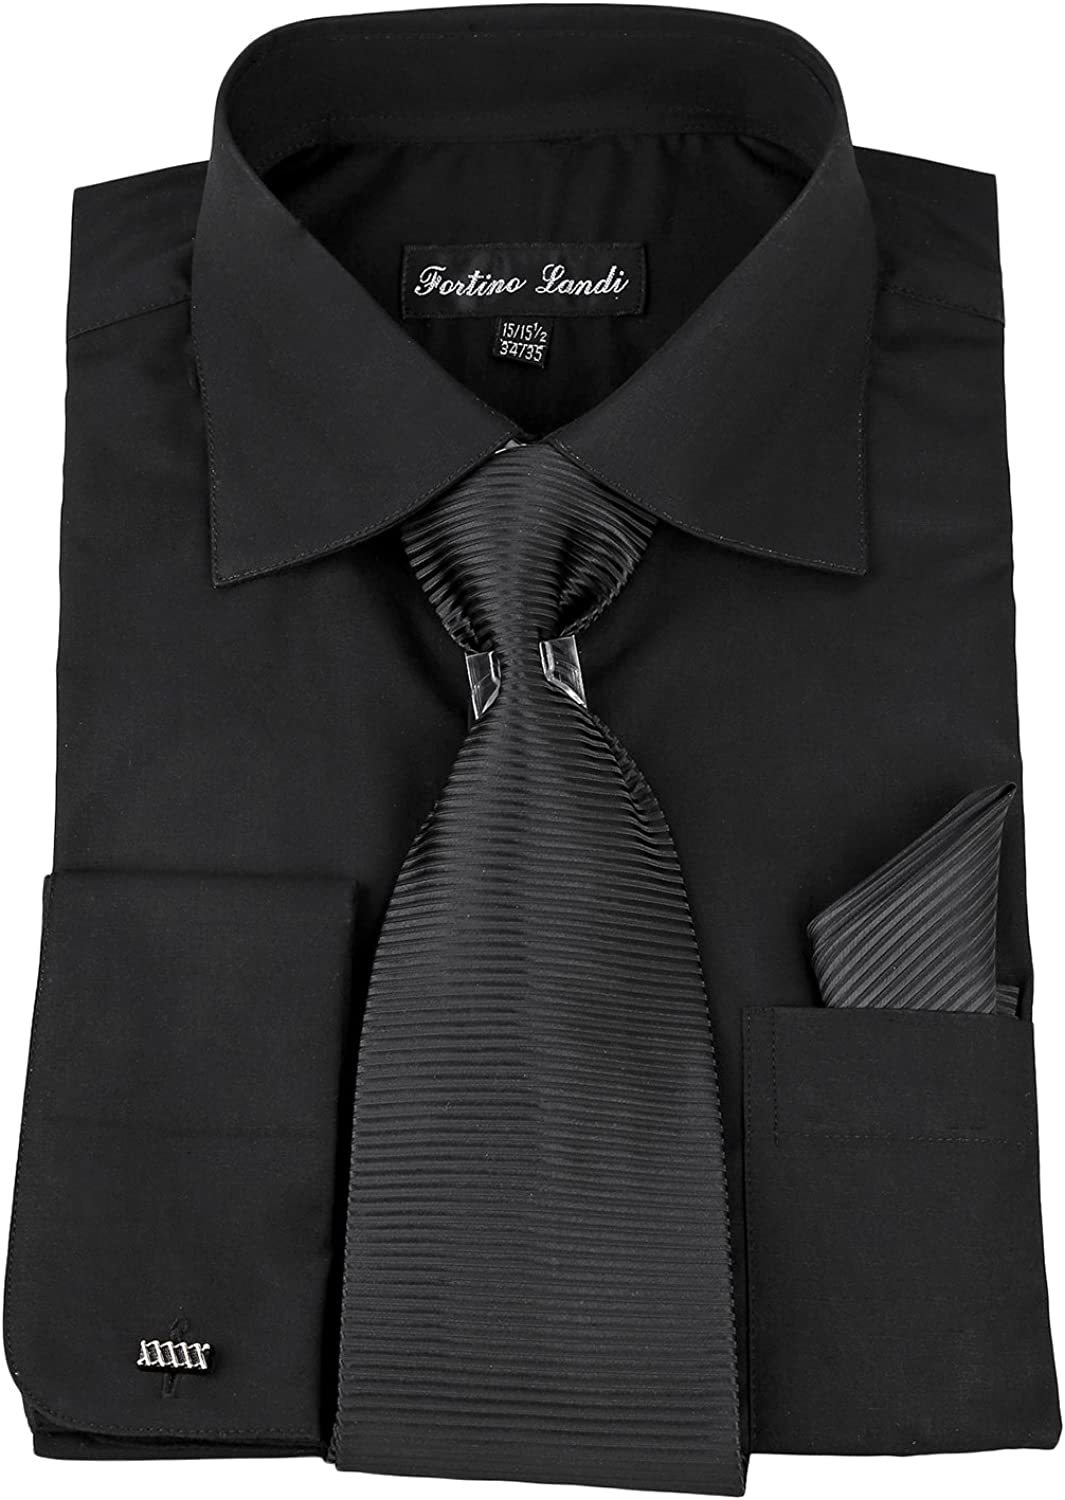 Milano Moda Solid Classic Dress Shirt with Tie, Hankie & French Cuffs SG27